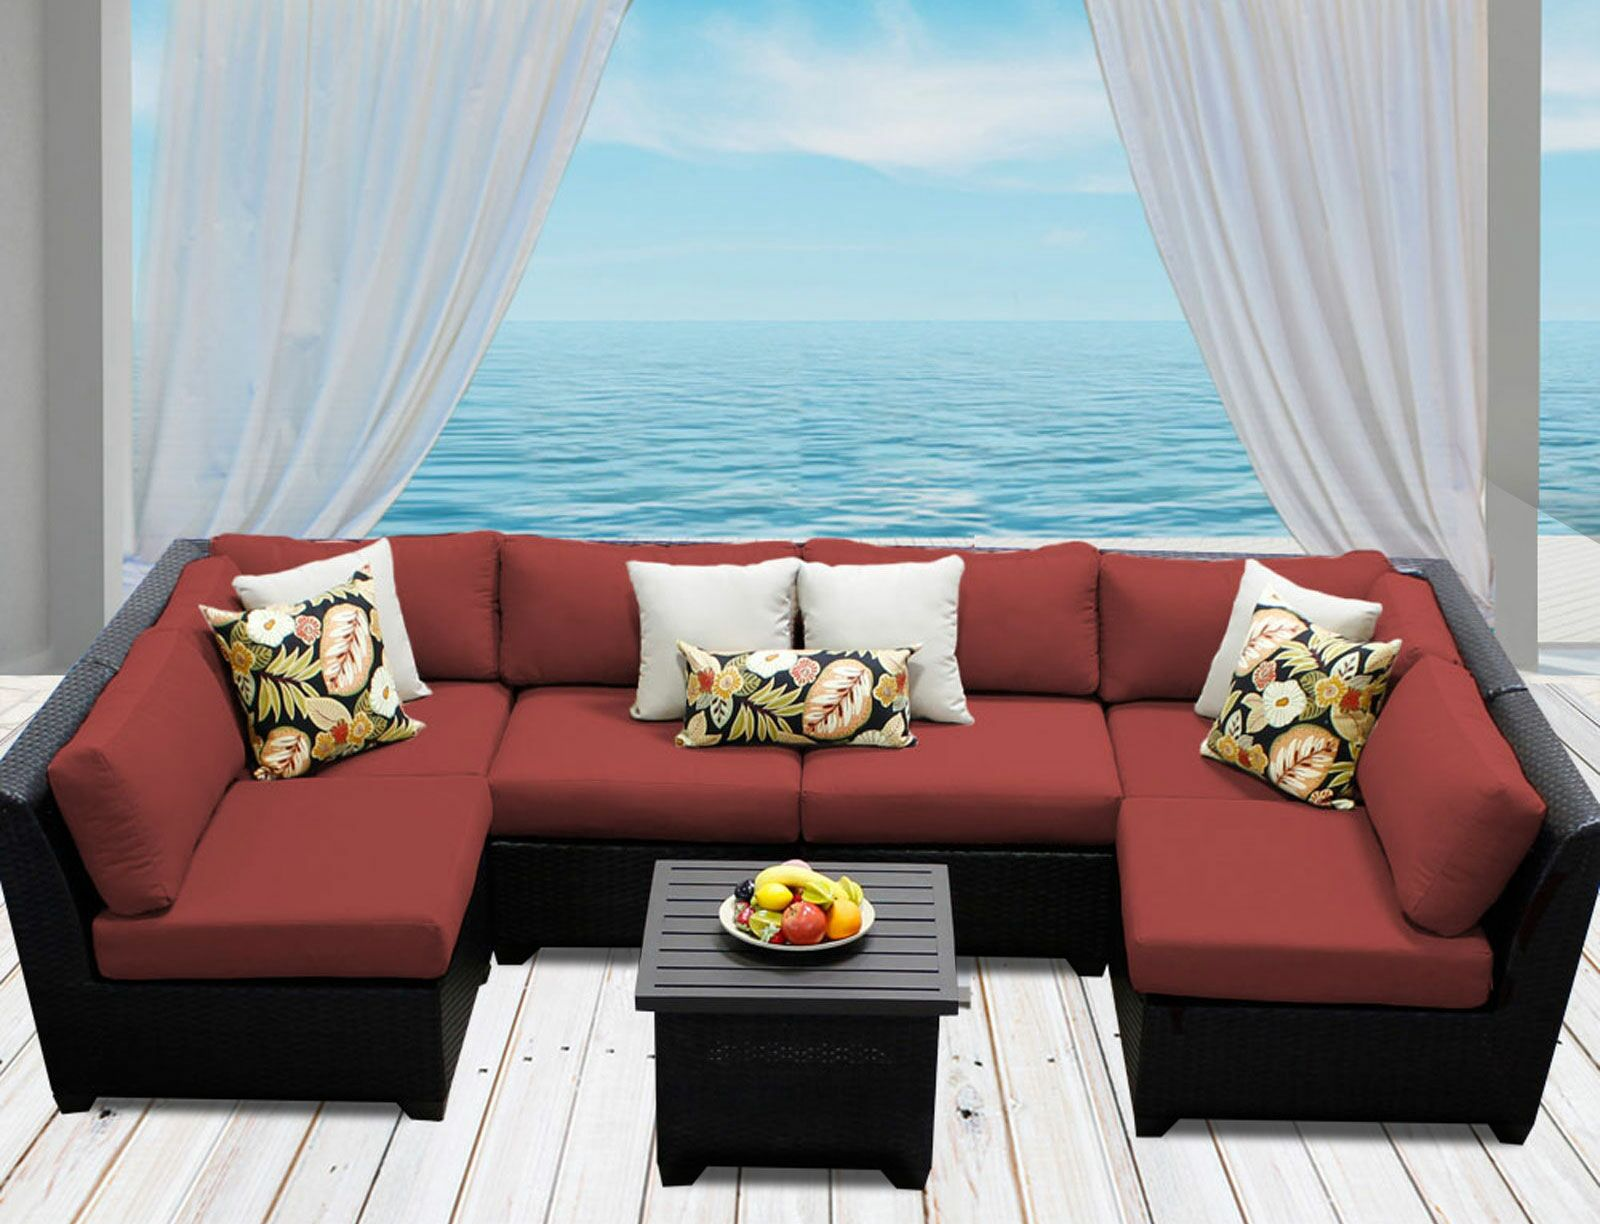 Barbados 7 Piece Sectional Set with Cushions Color: Terracotta